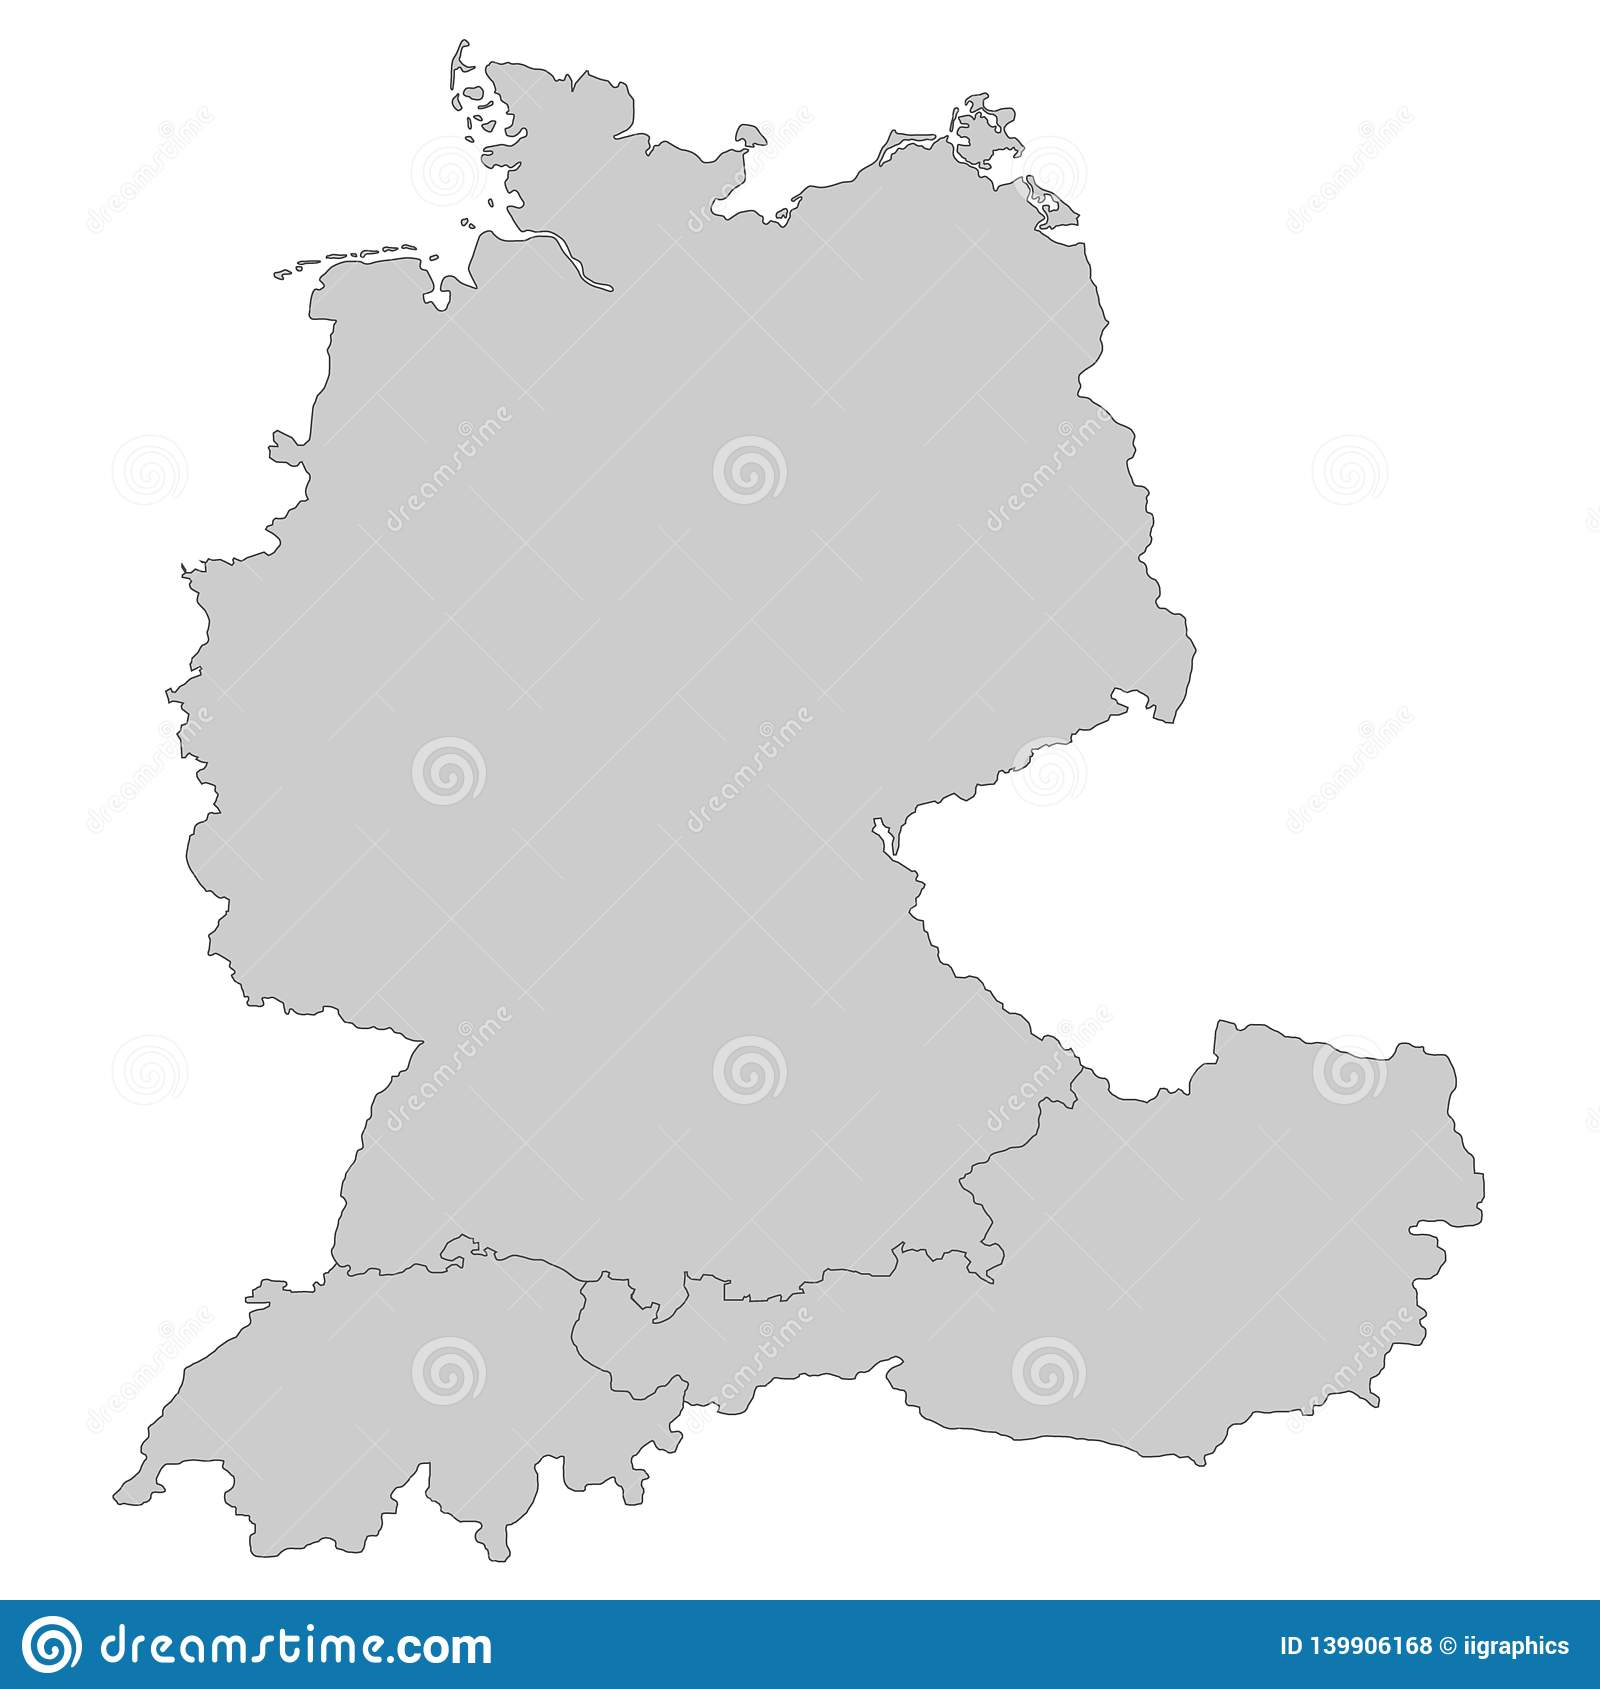 Map Of Germany And Switzerland.Map Of Germany Austria And Switzerland Stock Illustration